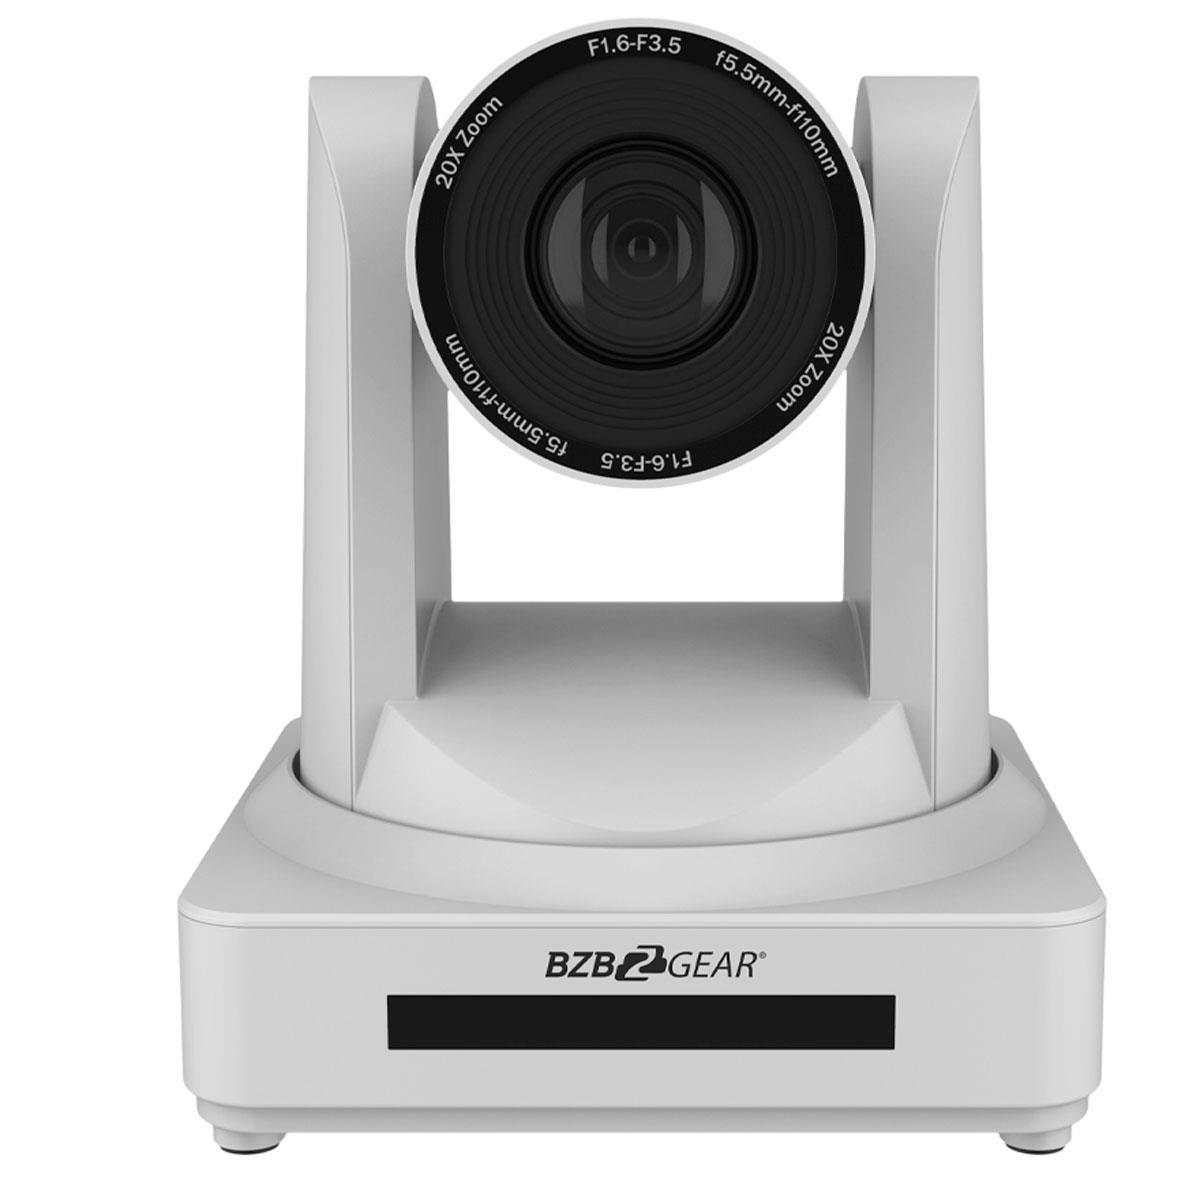 BZB GEAR LVPTZ PTZ 20x Zoom Full HD HDMI/SDI Live Streaming Camera with POE, White